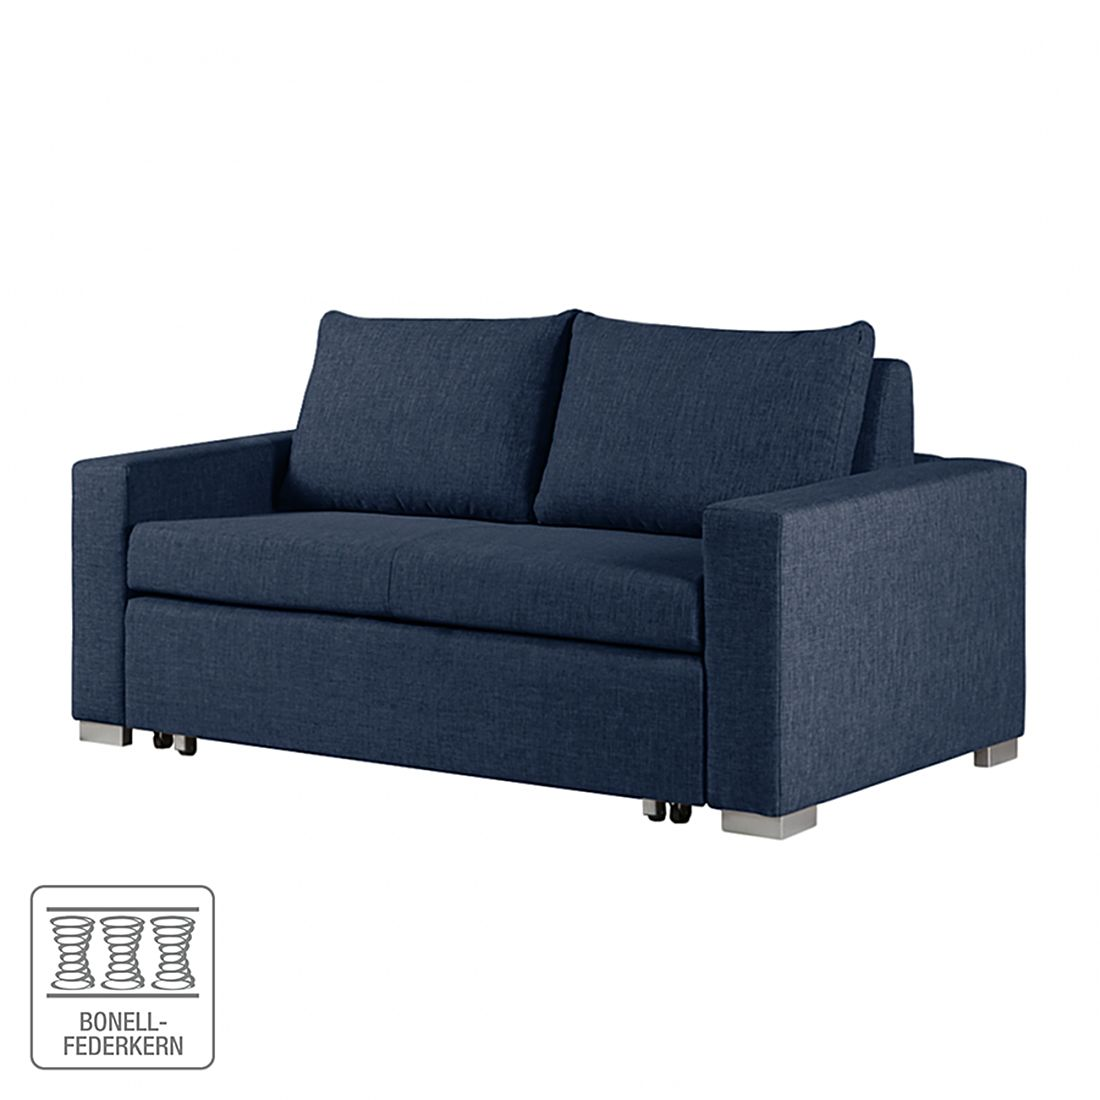 schlafsofa latina webstoff blau breite 150 cm ebay. Black Bedroom Furniture Sets. Home Design Ideas